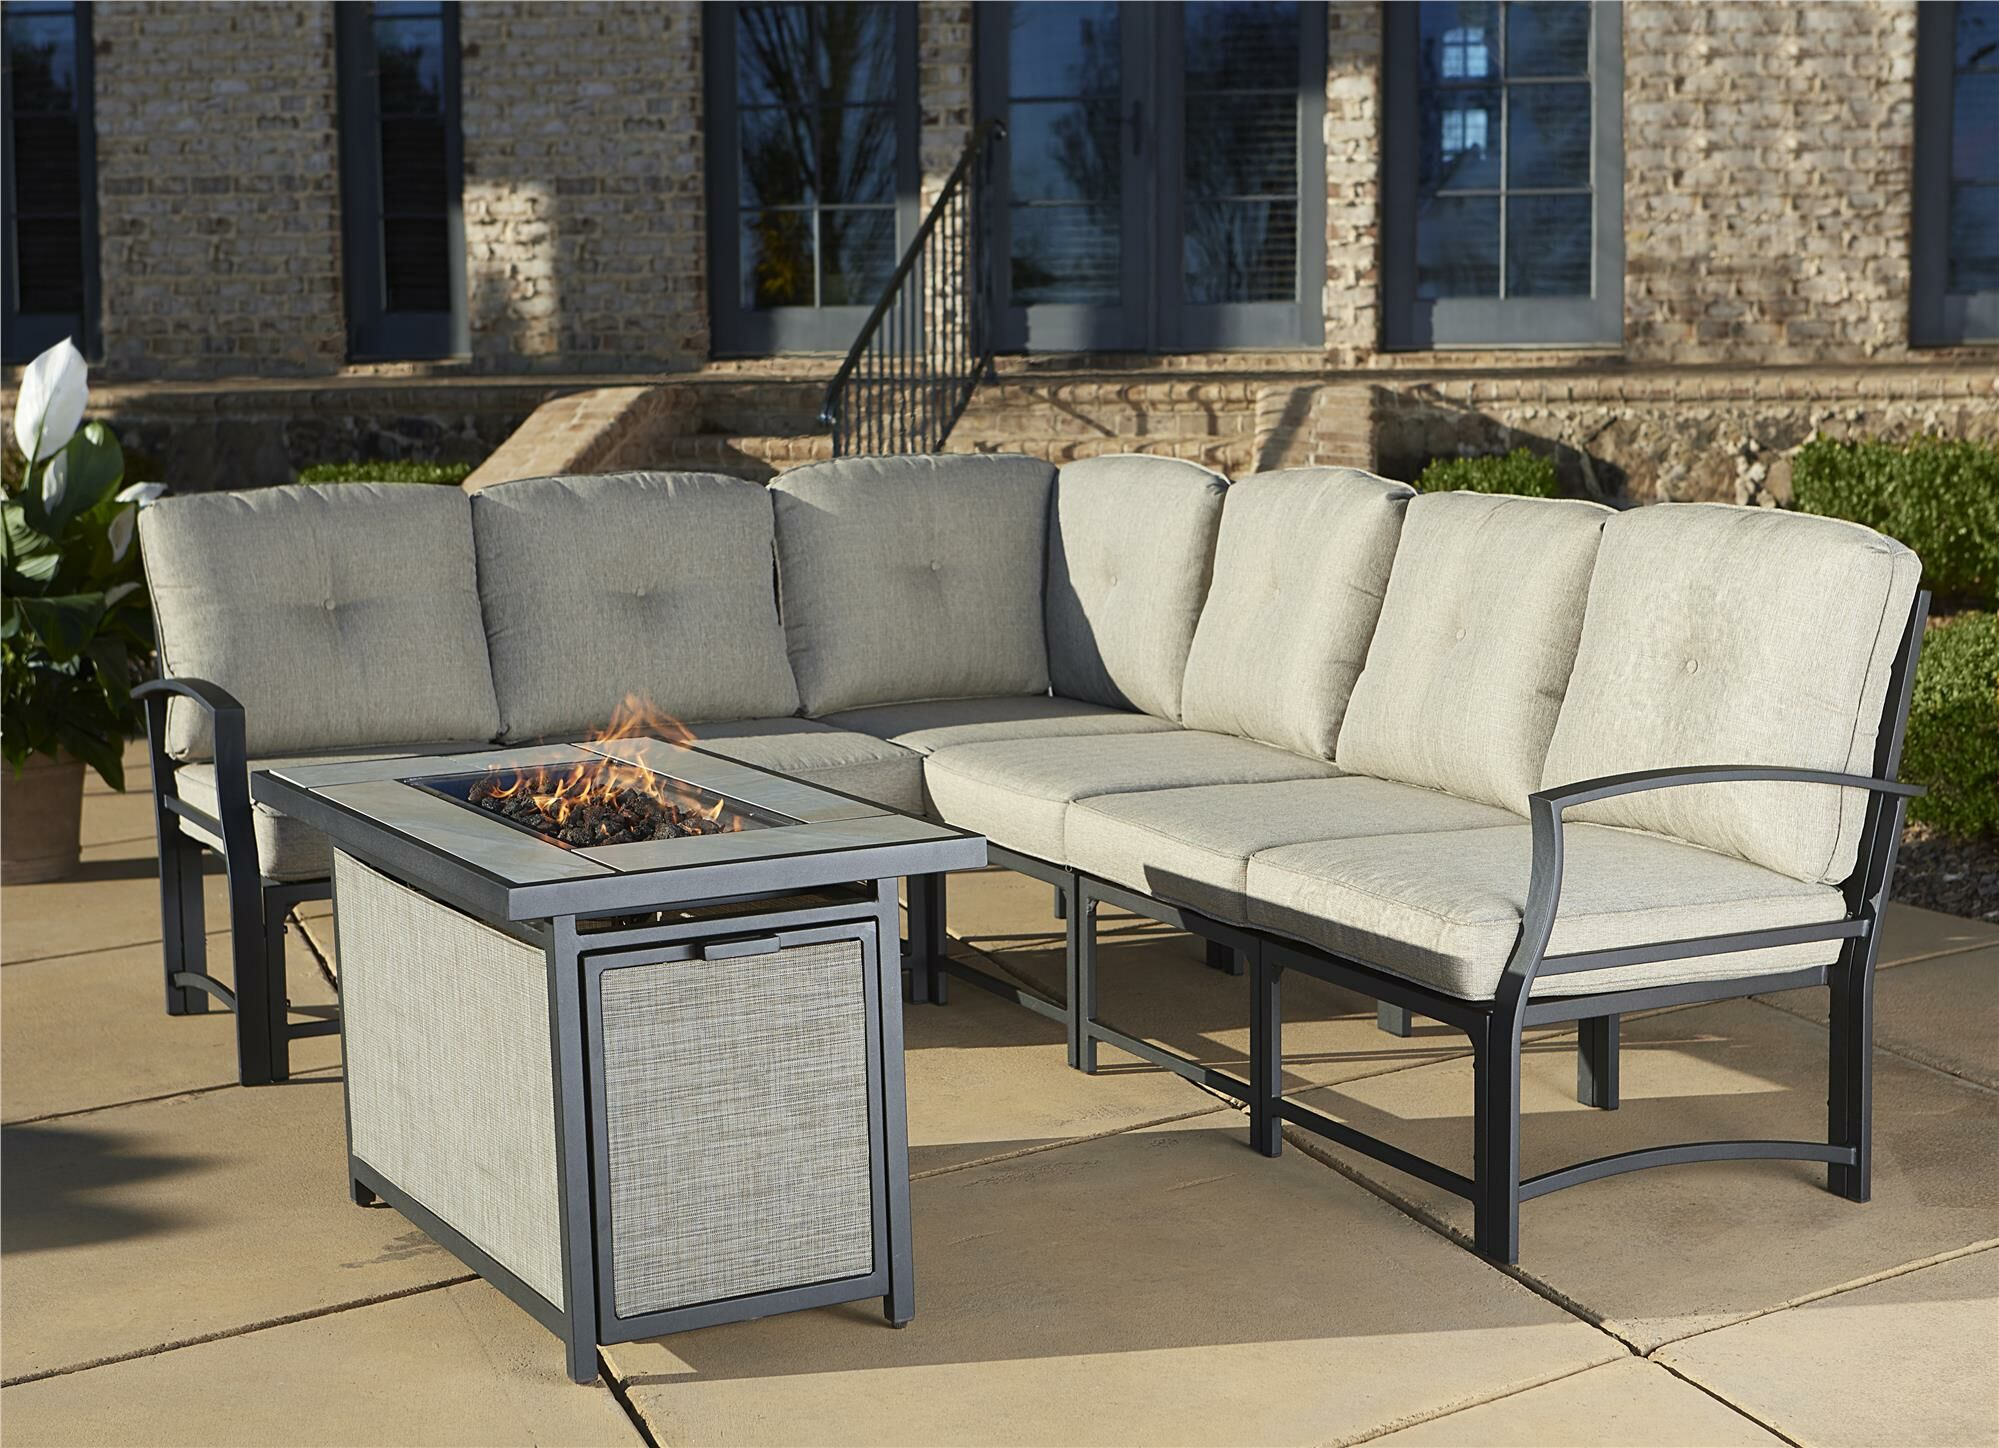 Pavilion Aluminum Sectional with Cushions